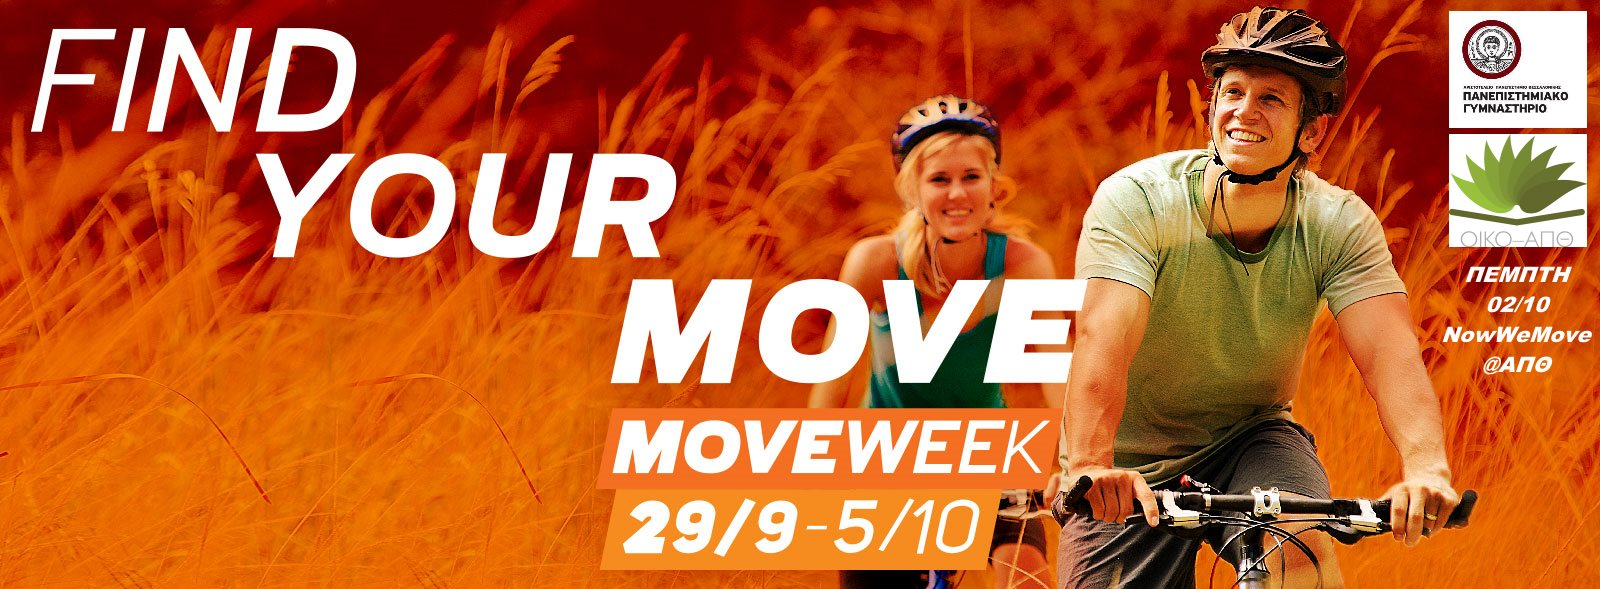 Move Week FB Banner